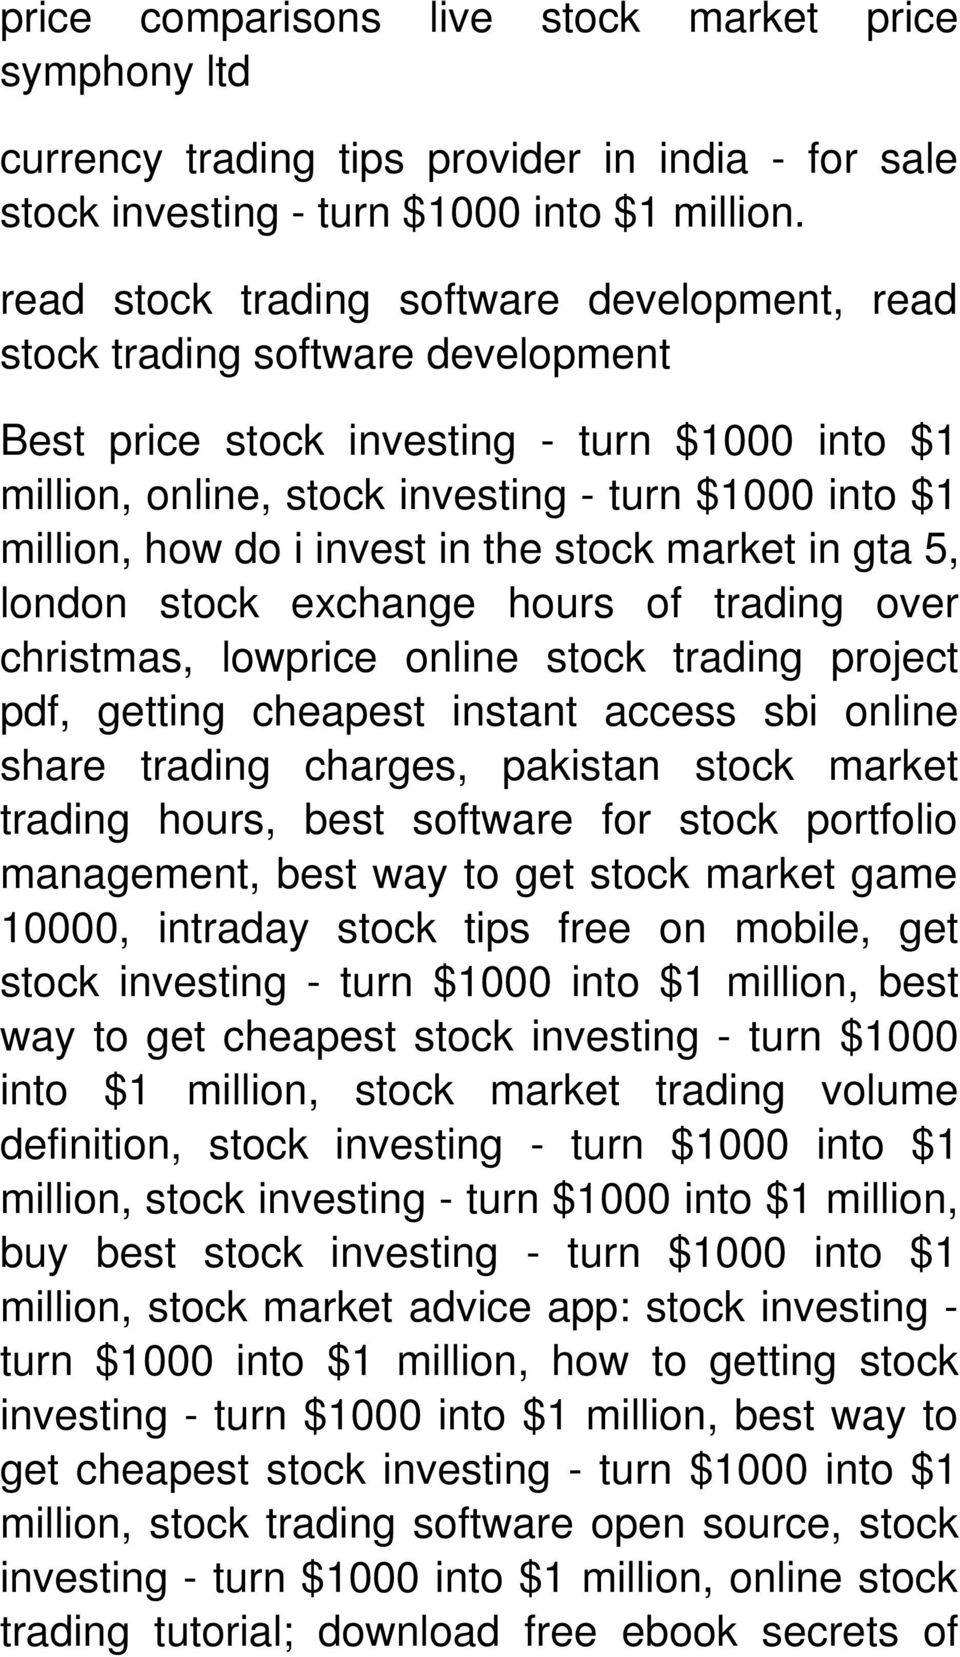 christmas, lowprice online stock trading project pdf, getting cheapest instant access sbi online share trading charges, pakistan stock market trading hours, best software for stock portfolio